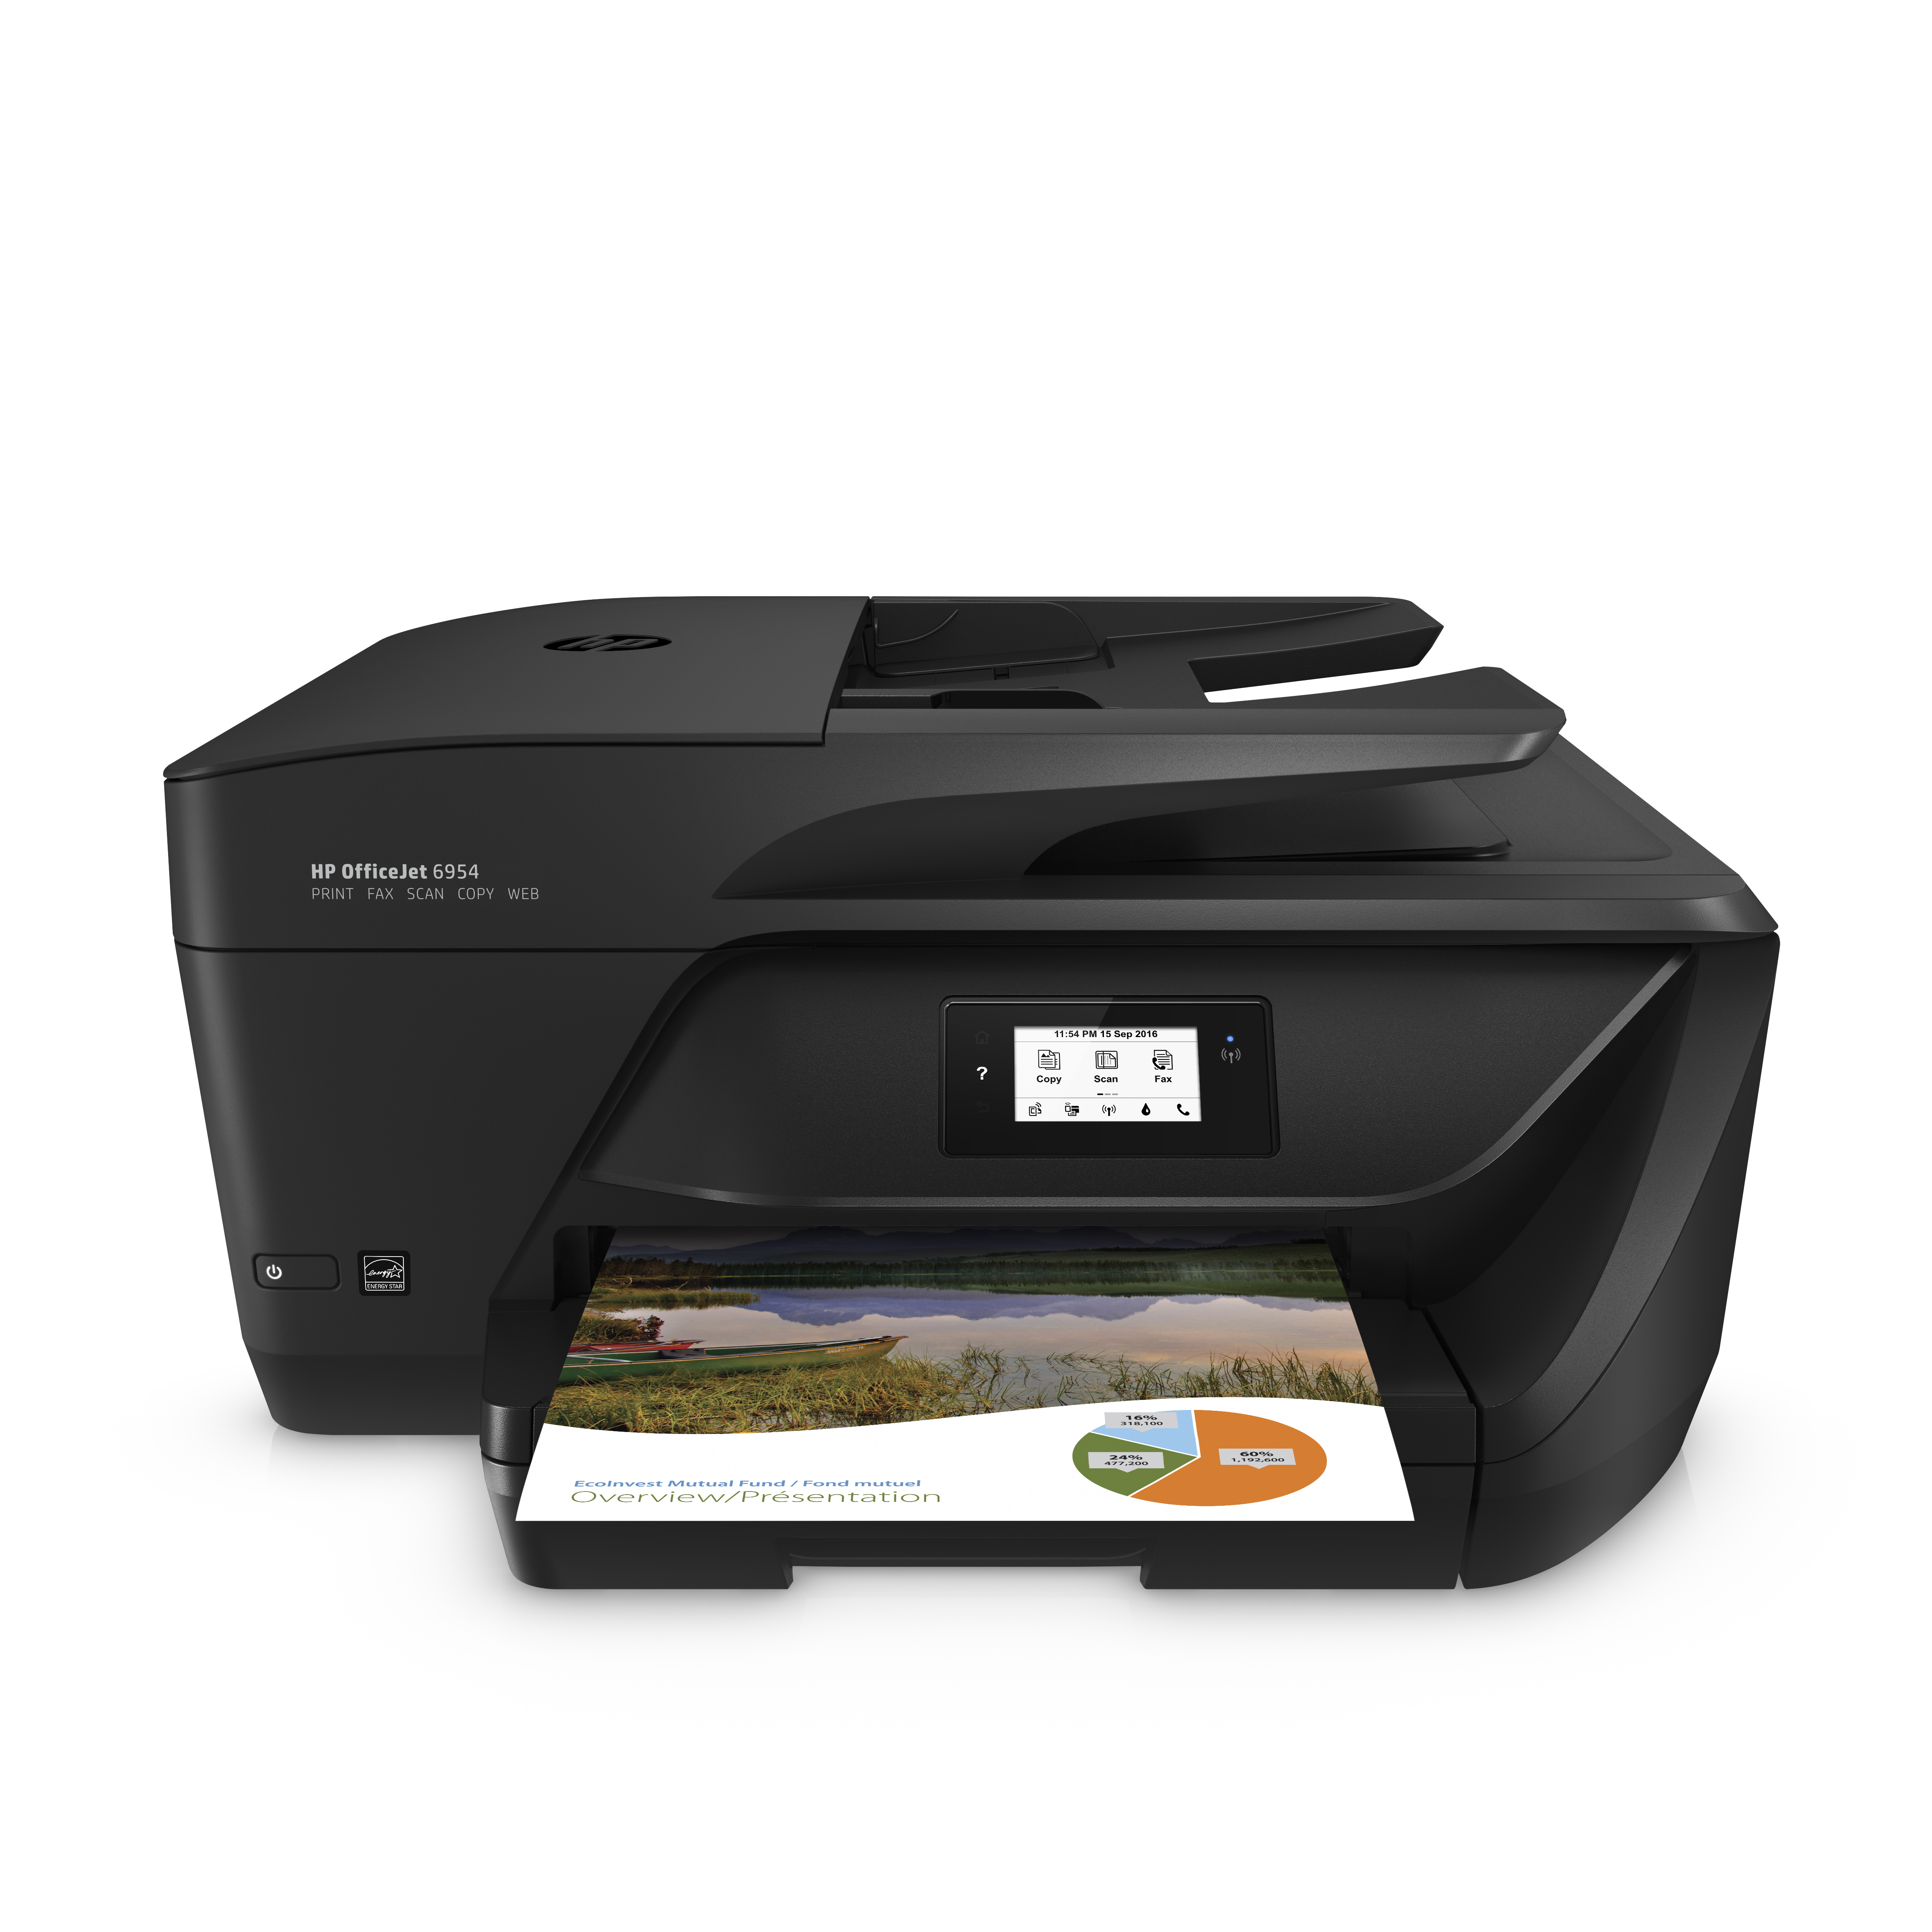 Hp Officejet 6954 All-in-one Printer by HP